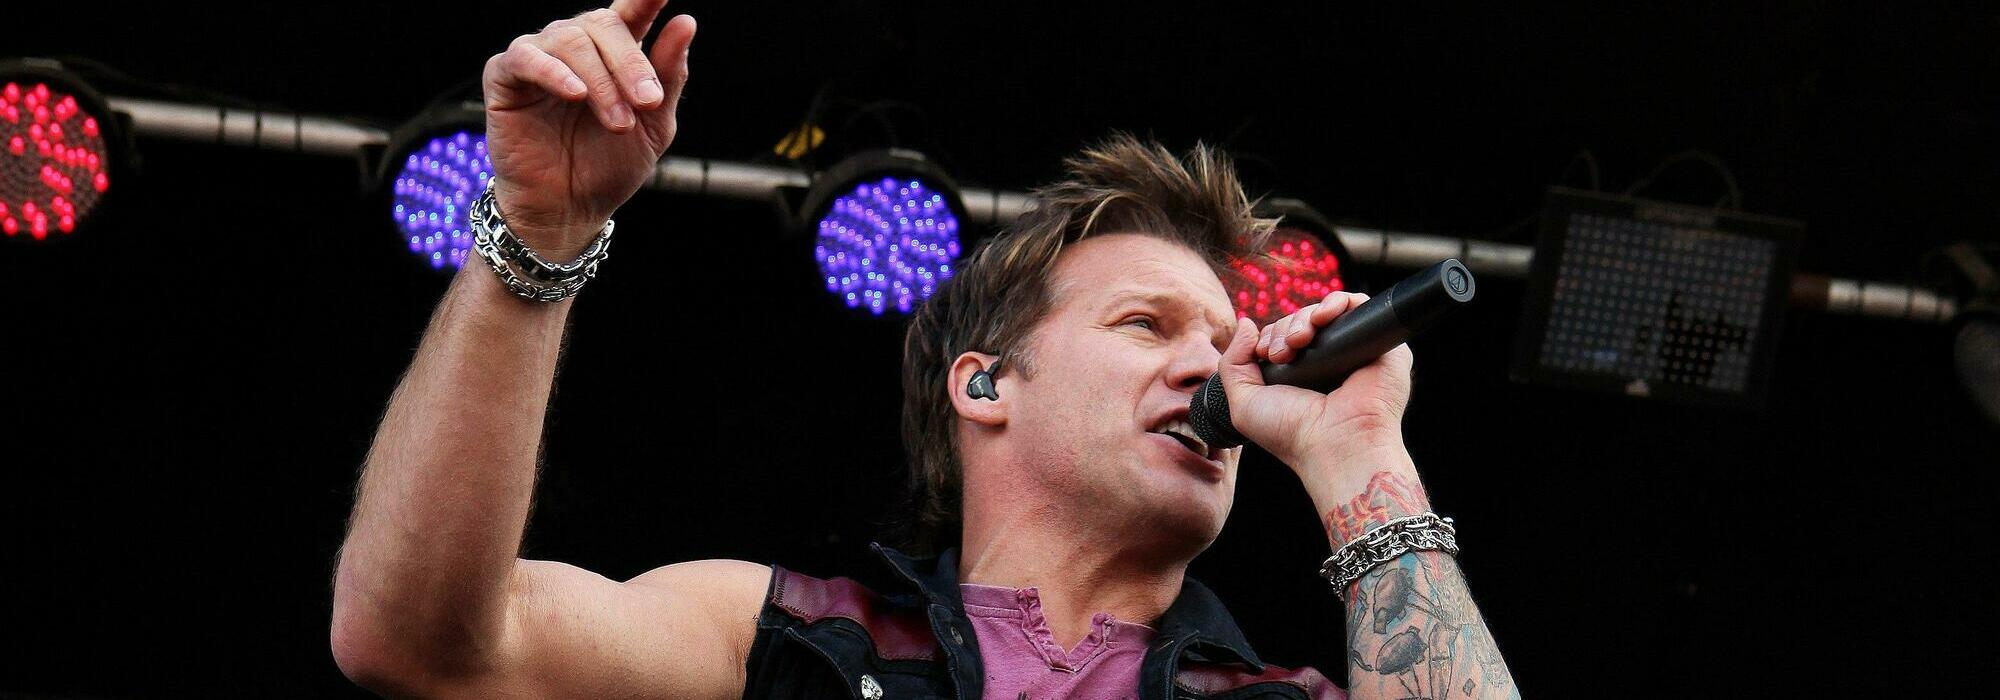 A Fozzy live event